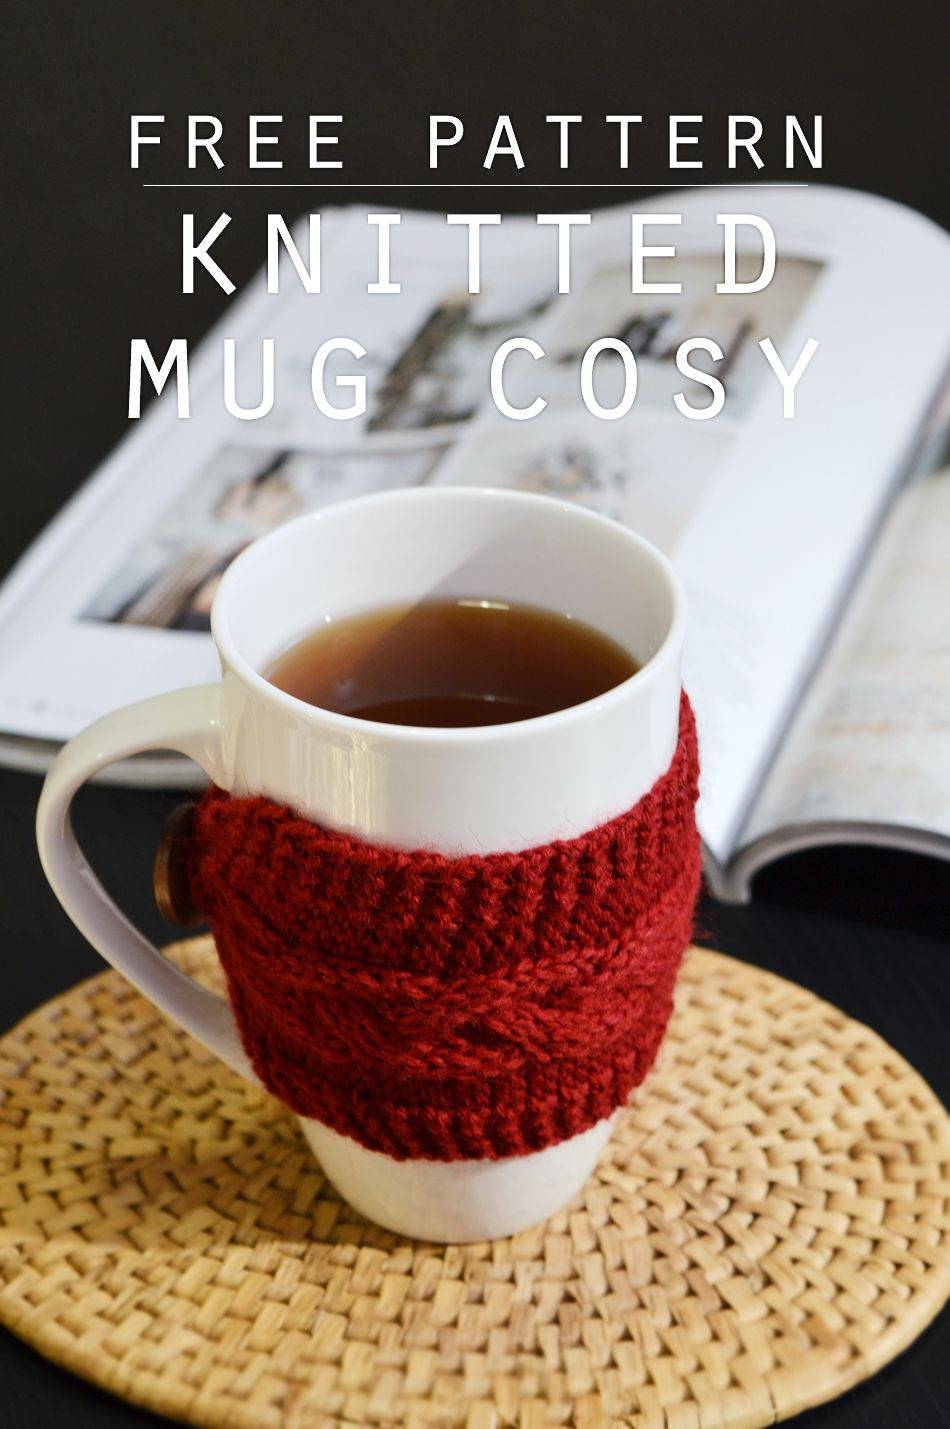 Free pattern for a braided cable mug cosy crafting fingers free pattern for a braided cable mug cosy crafting fingers knitting freebies bankloansurffo Images